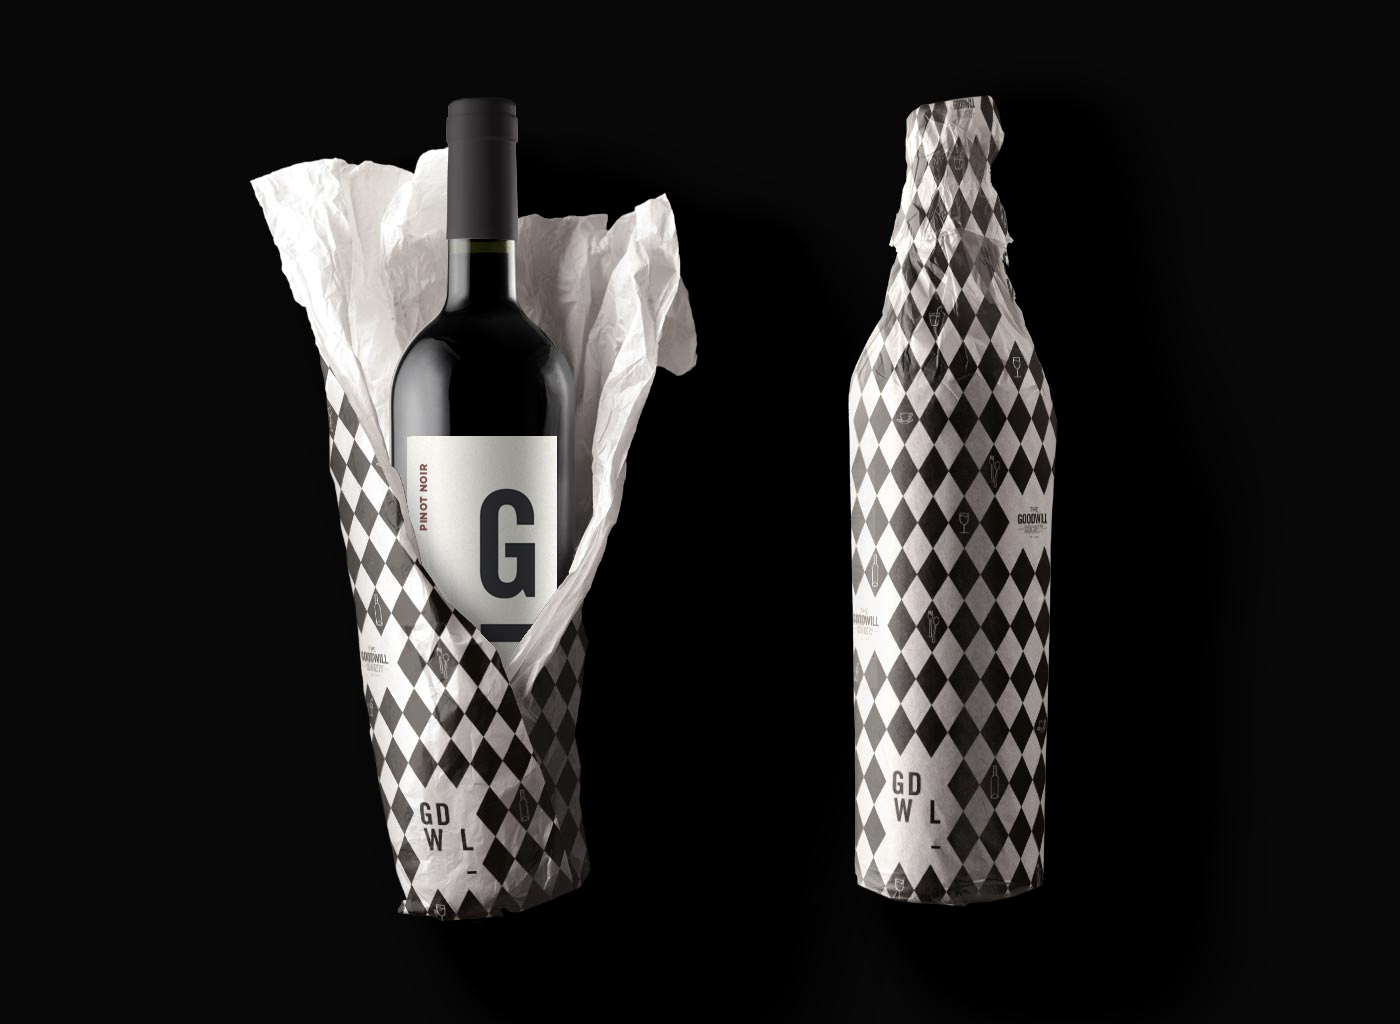 KirstyLudbrook_GoodwillSociety_WineBottle